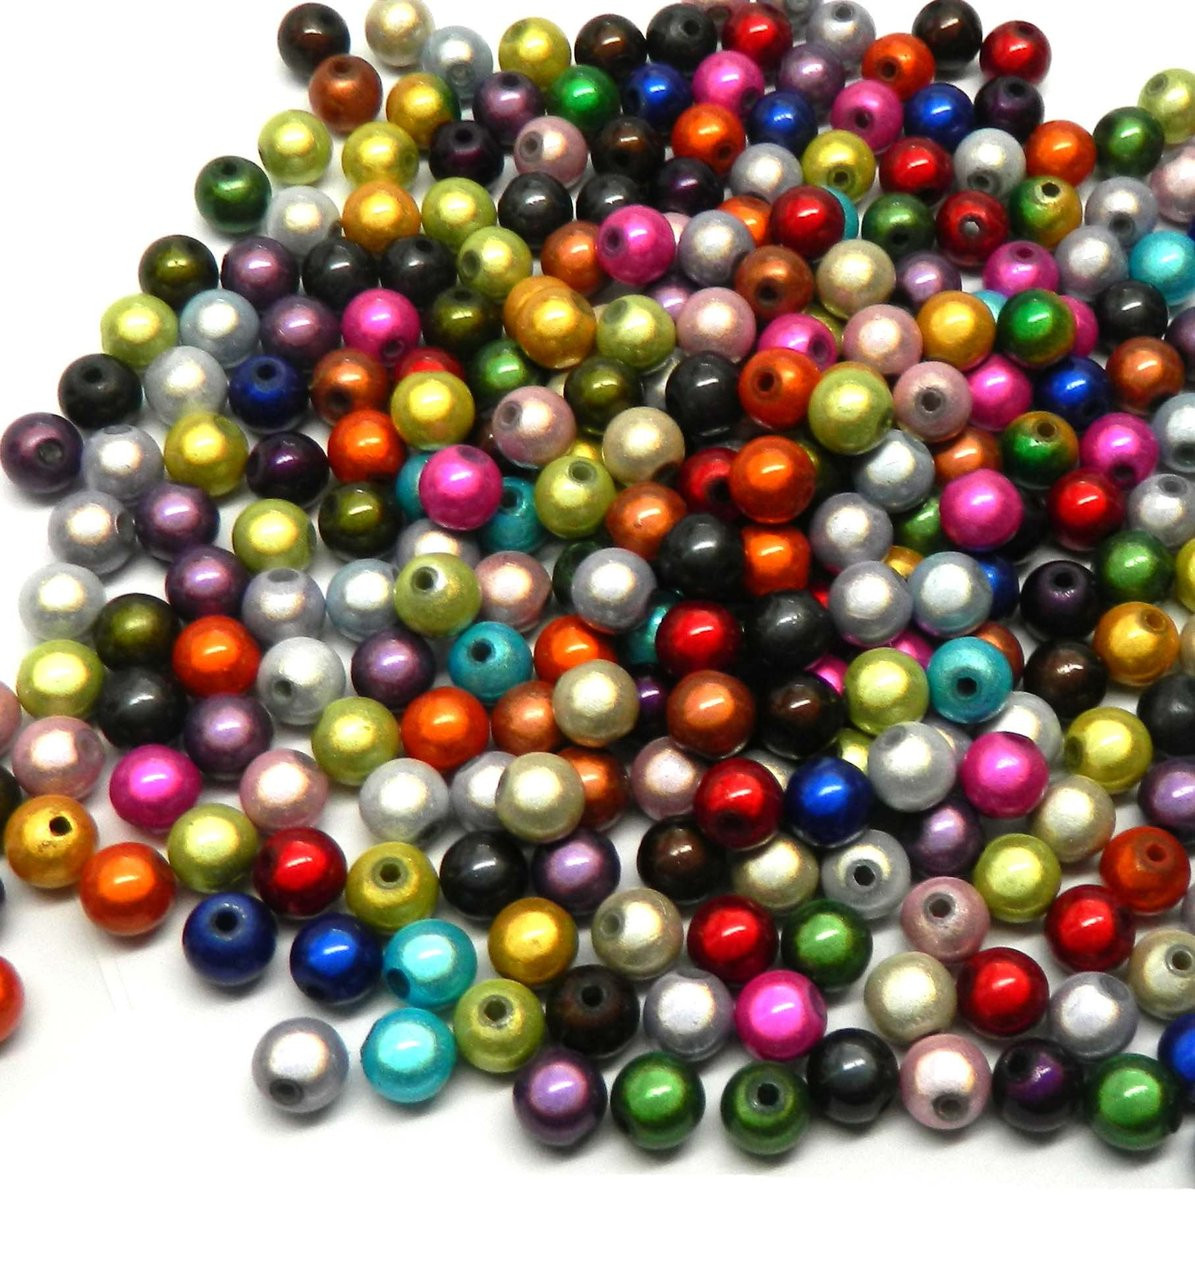 150 x Metallic Plated Acrylic Beads Round Mixed Colour 8mm